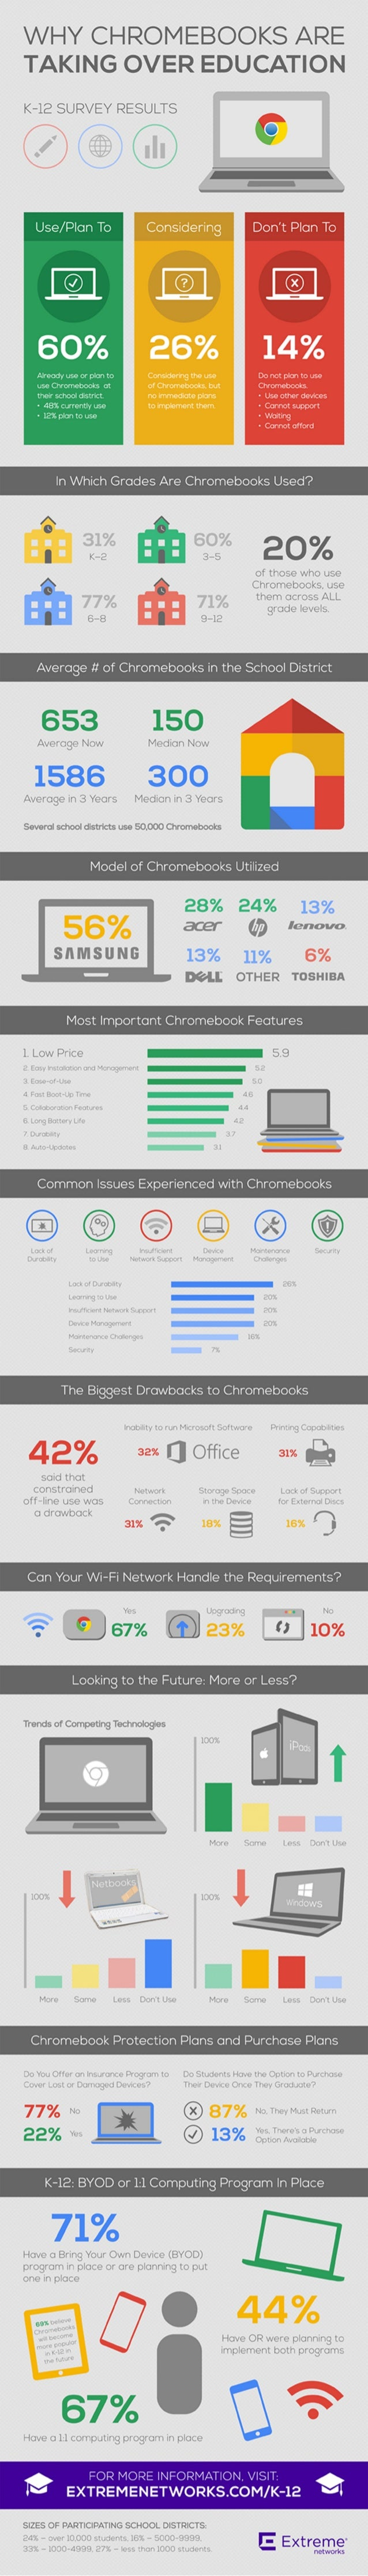 """WHY CHROMEBOOKS ARE TAKING OVER EDUCATION  K-12 SURVEY RESULTS  o  _-/        /1""""-. v«a'Ji, I use or can to - -- - i ~ ;  ..."""